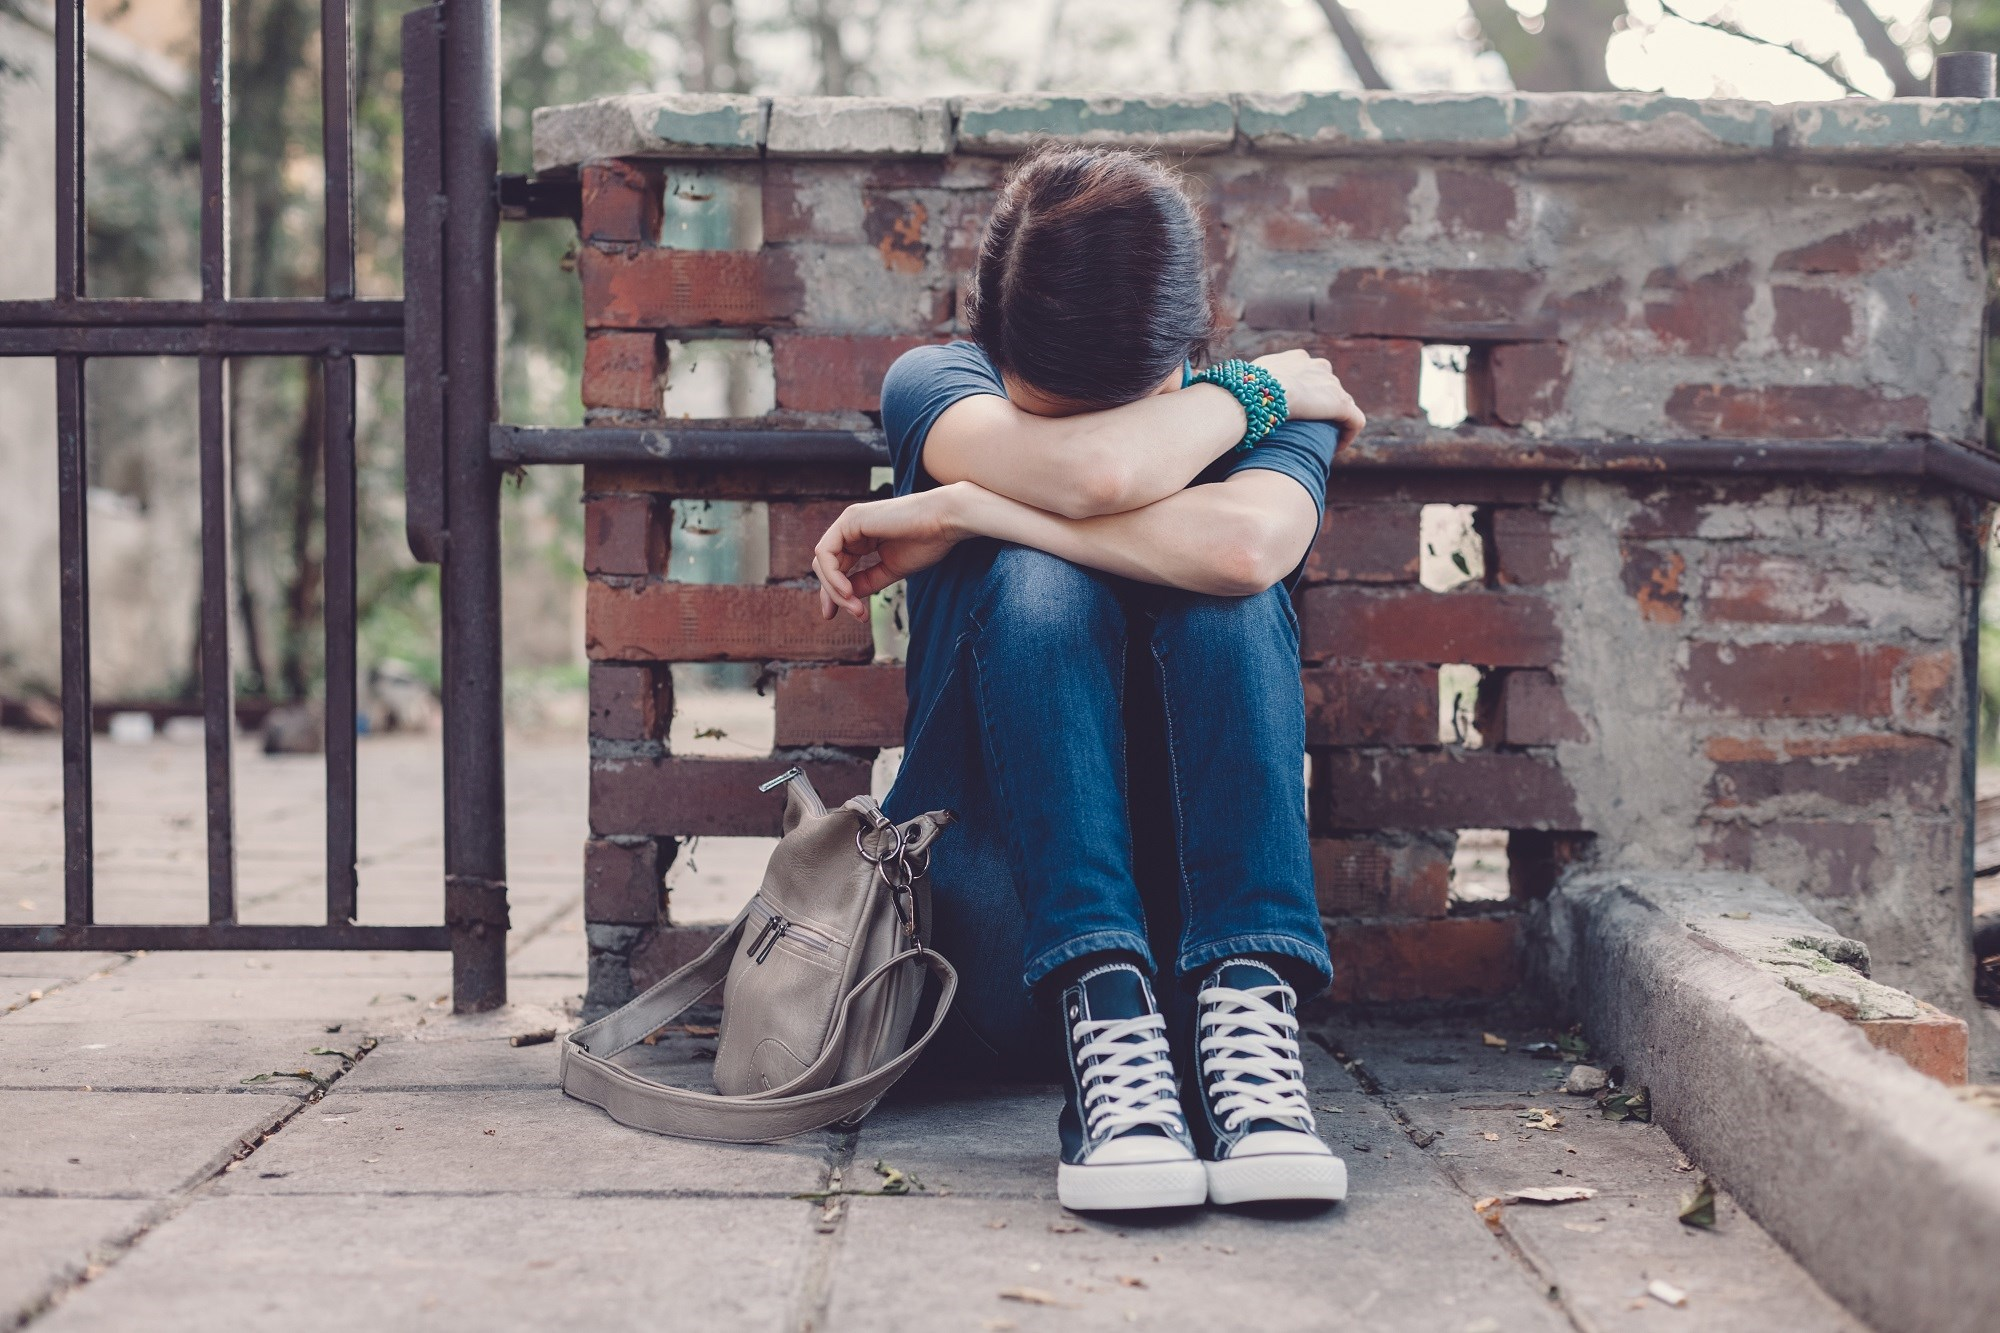 Childhood Trauma May Be Associated With Psychotic Experiences in Adulthood